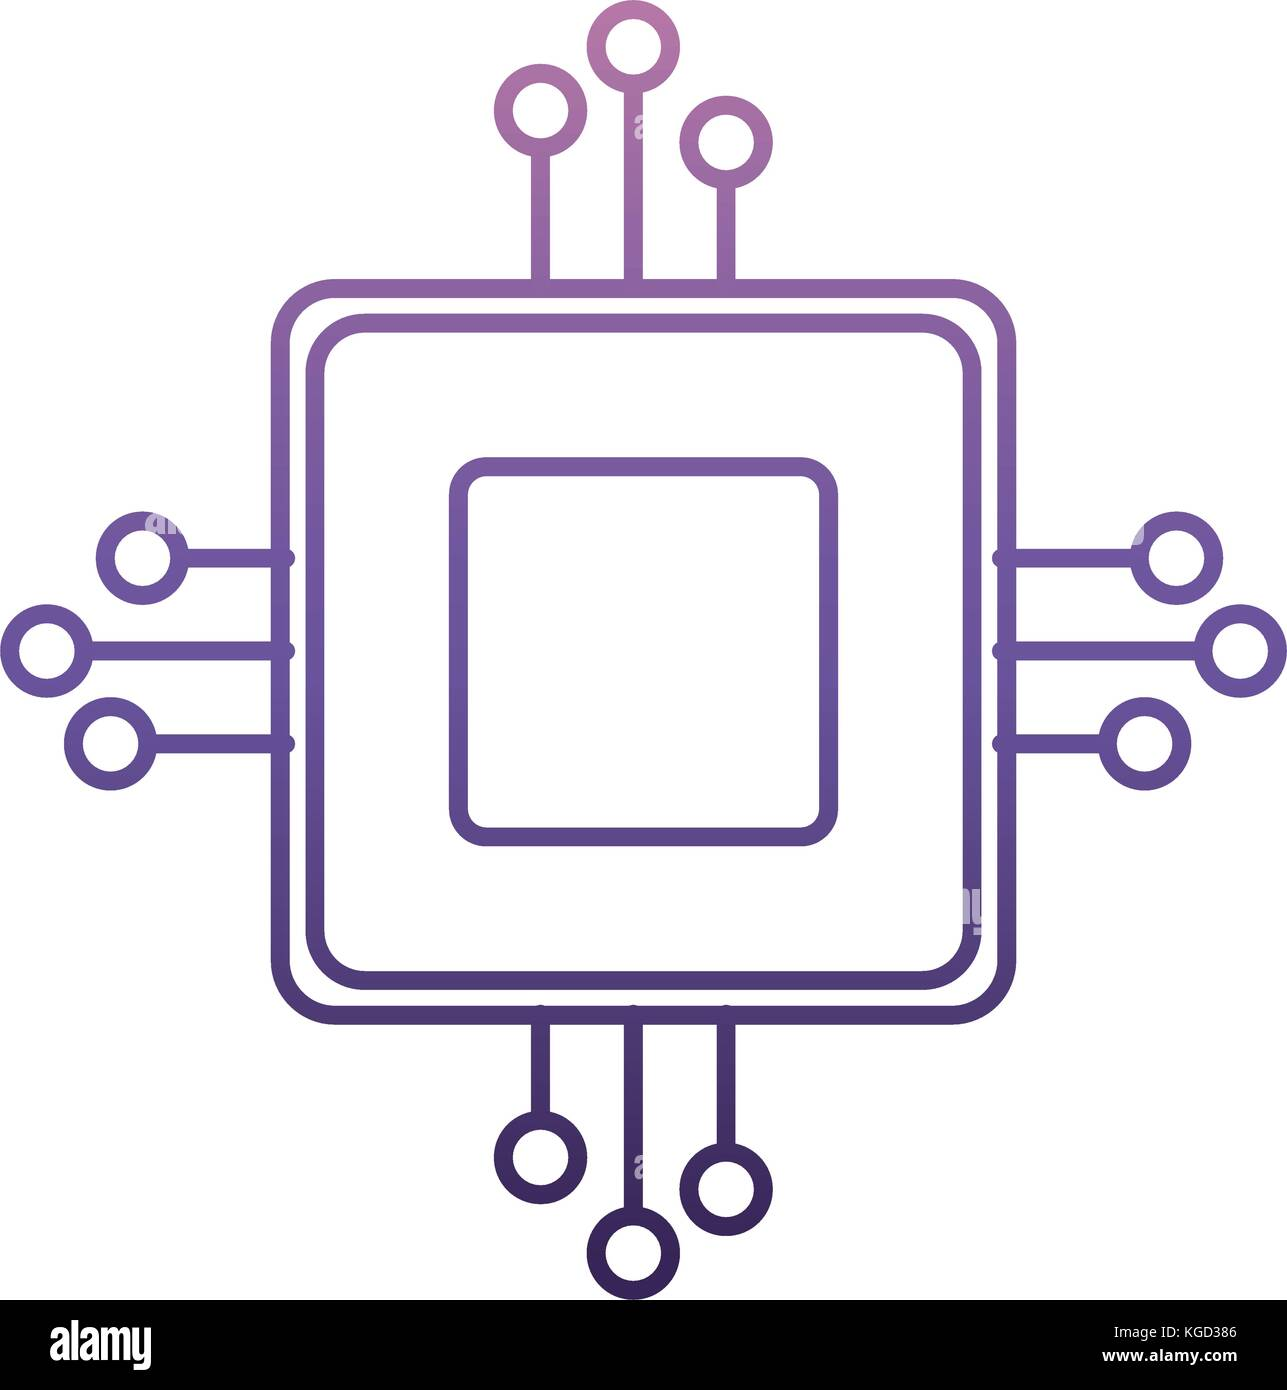 computer chip icon - Stock Image